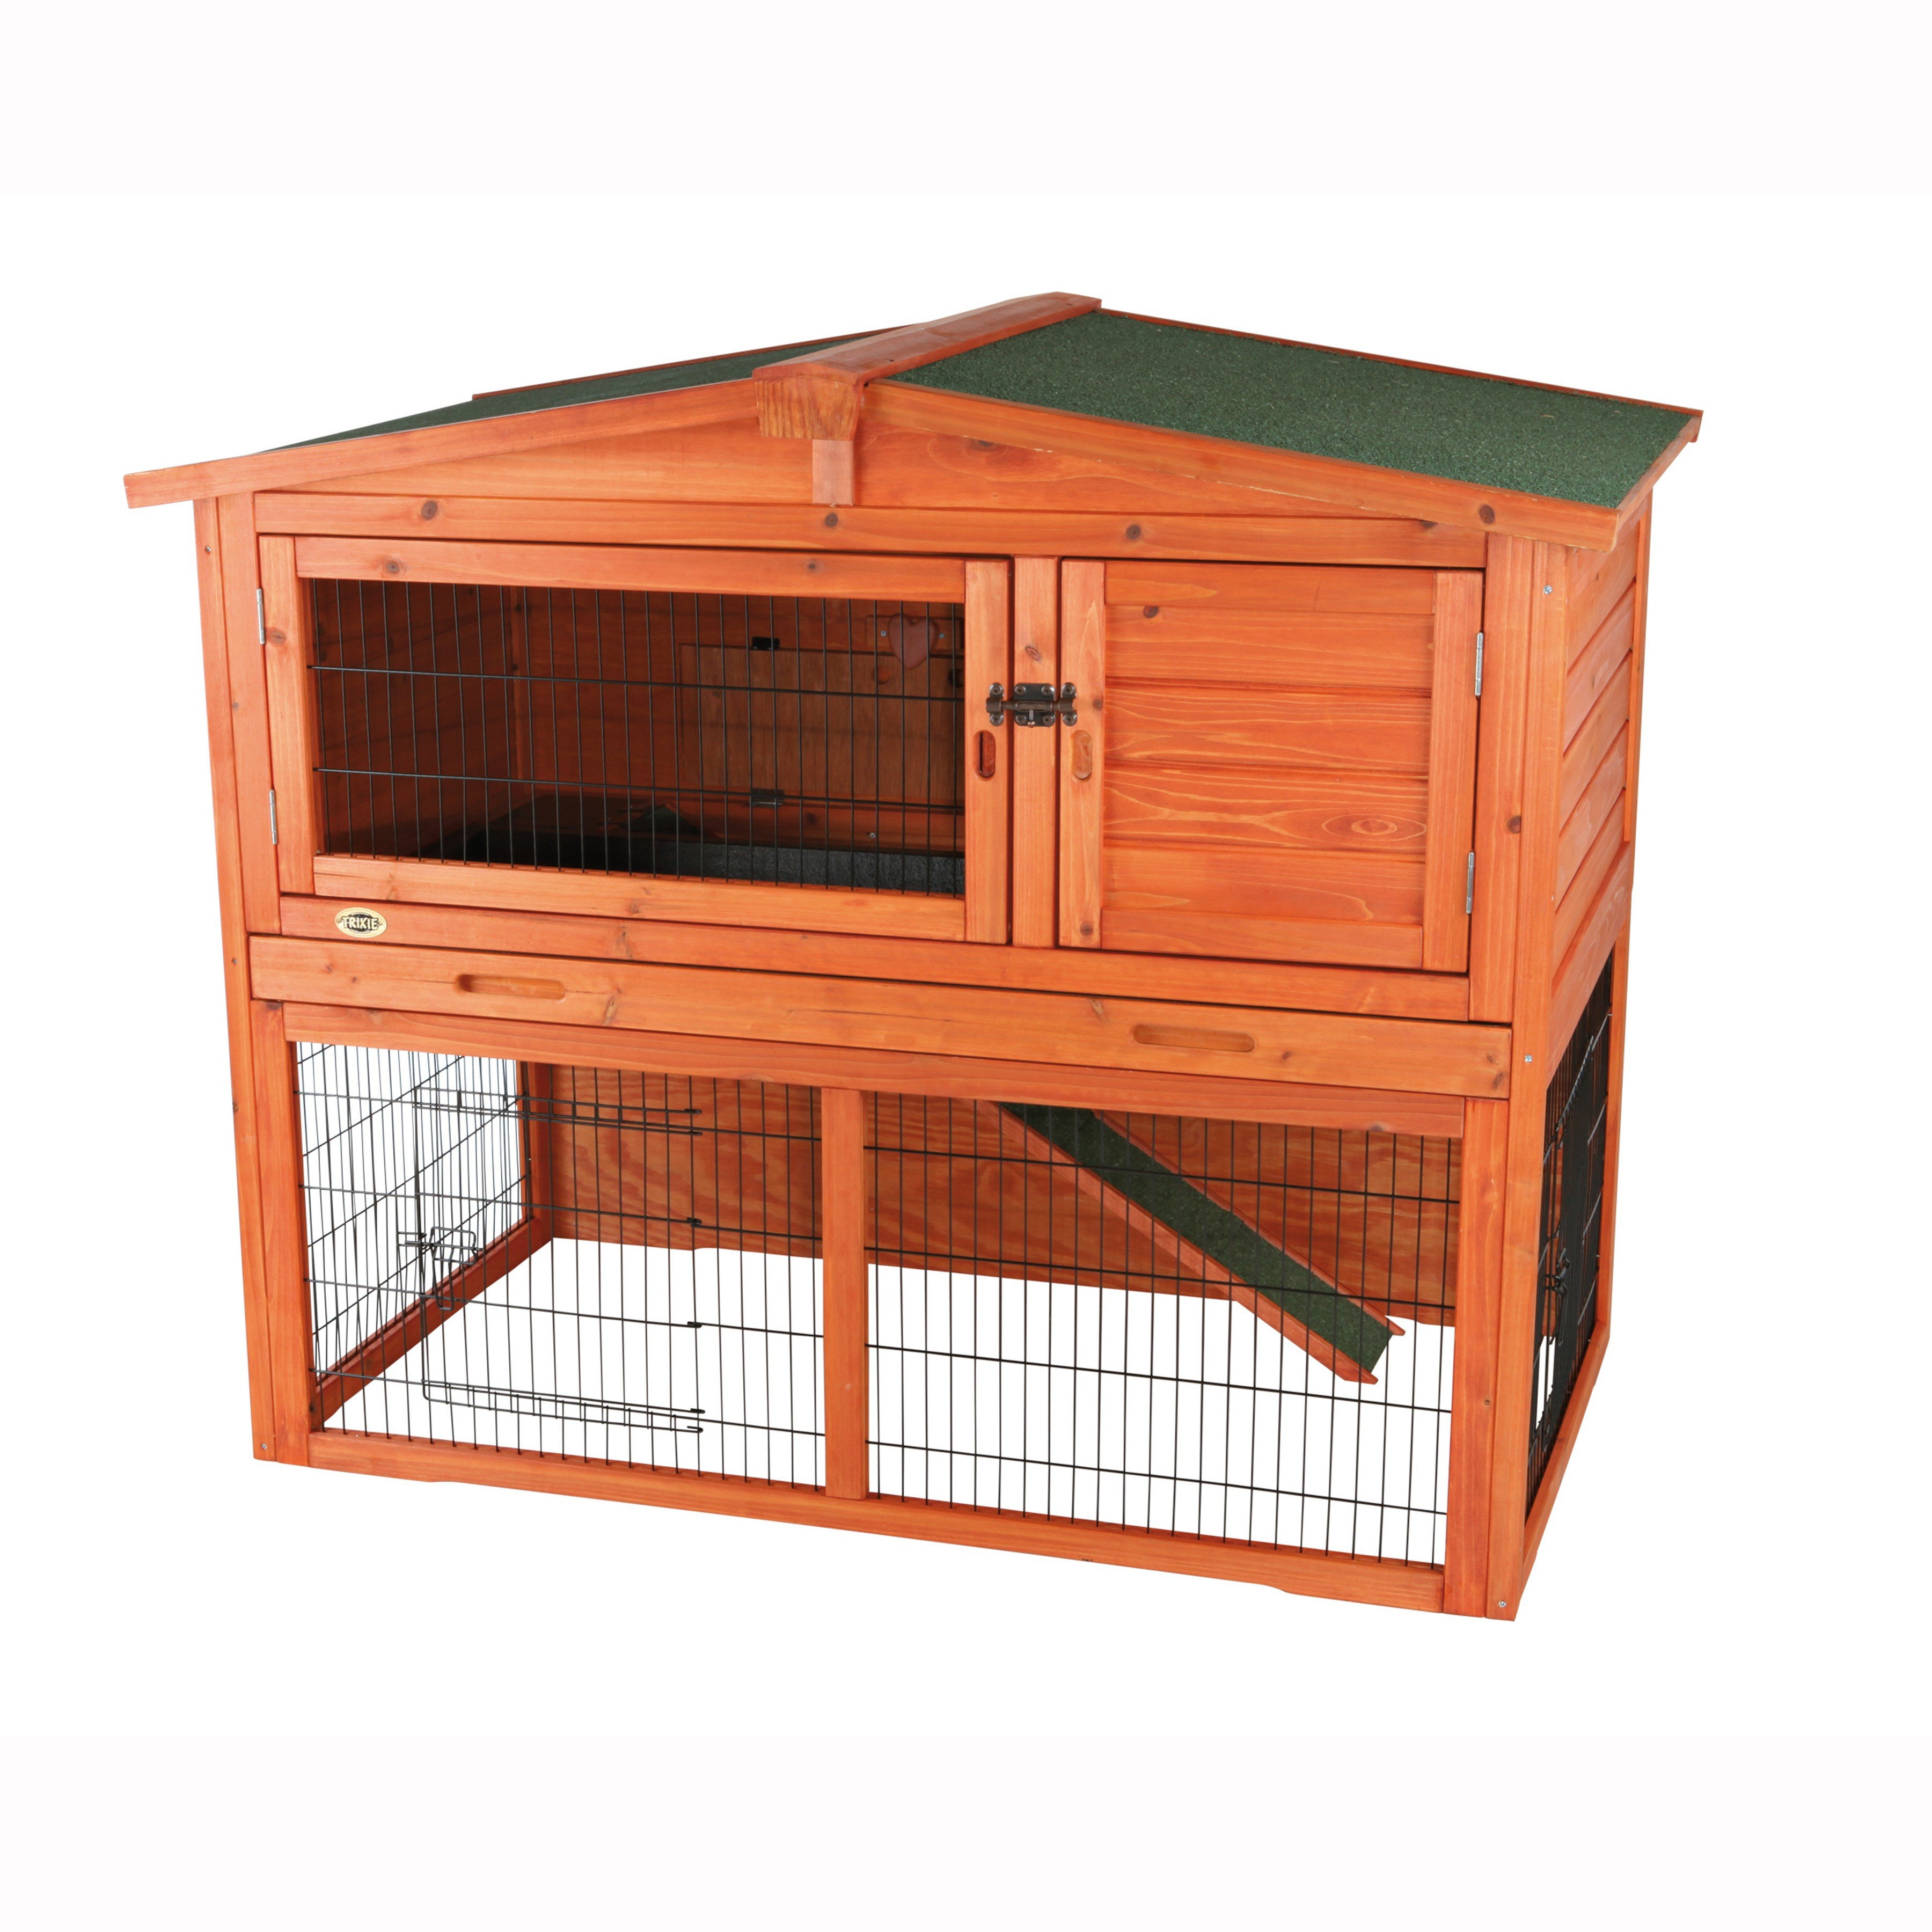 Trixie Rabbit Hutch with Attic, Large